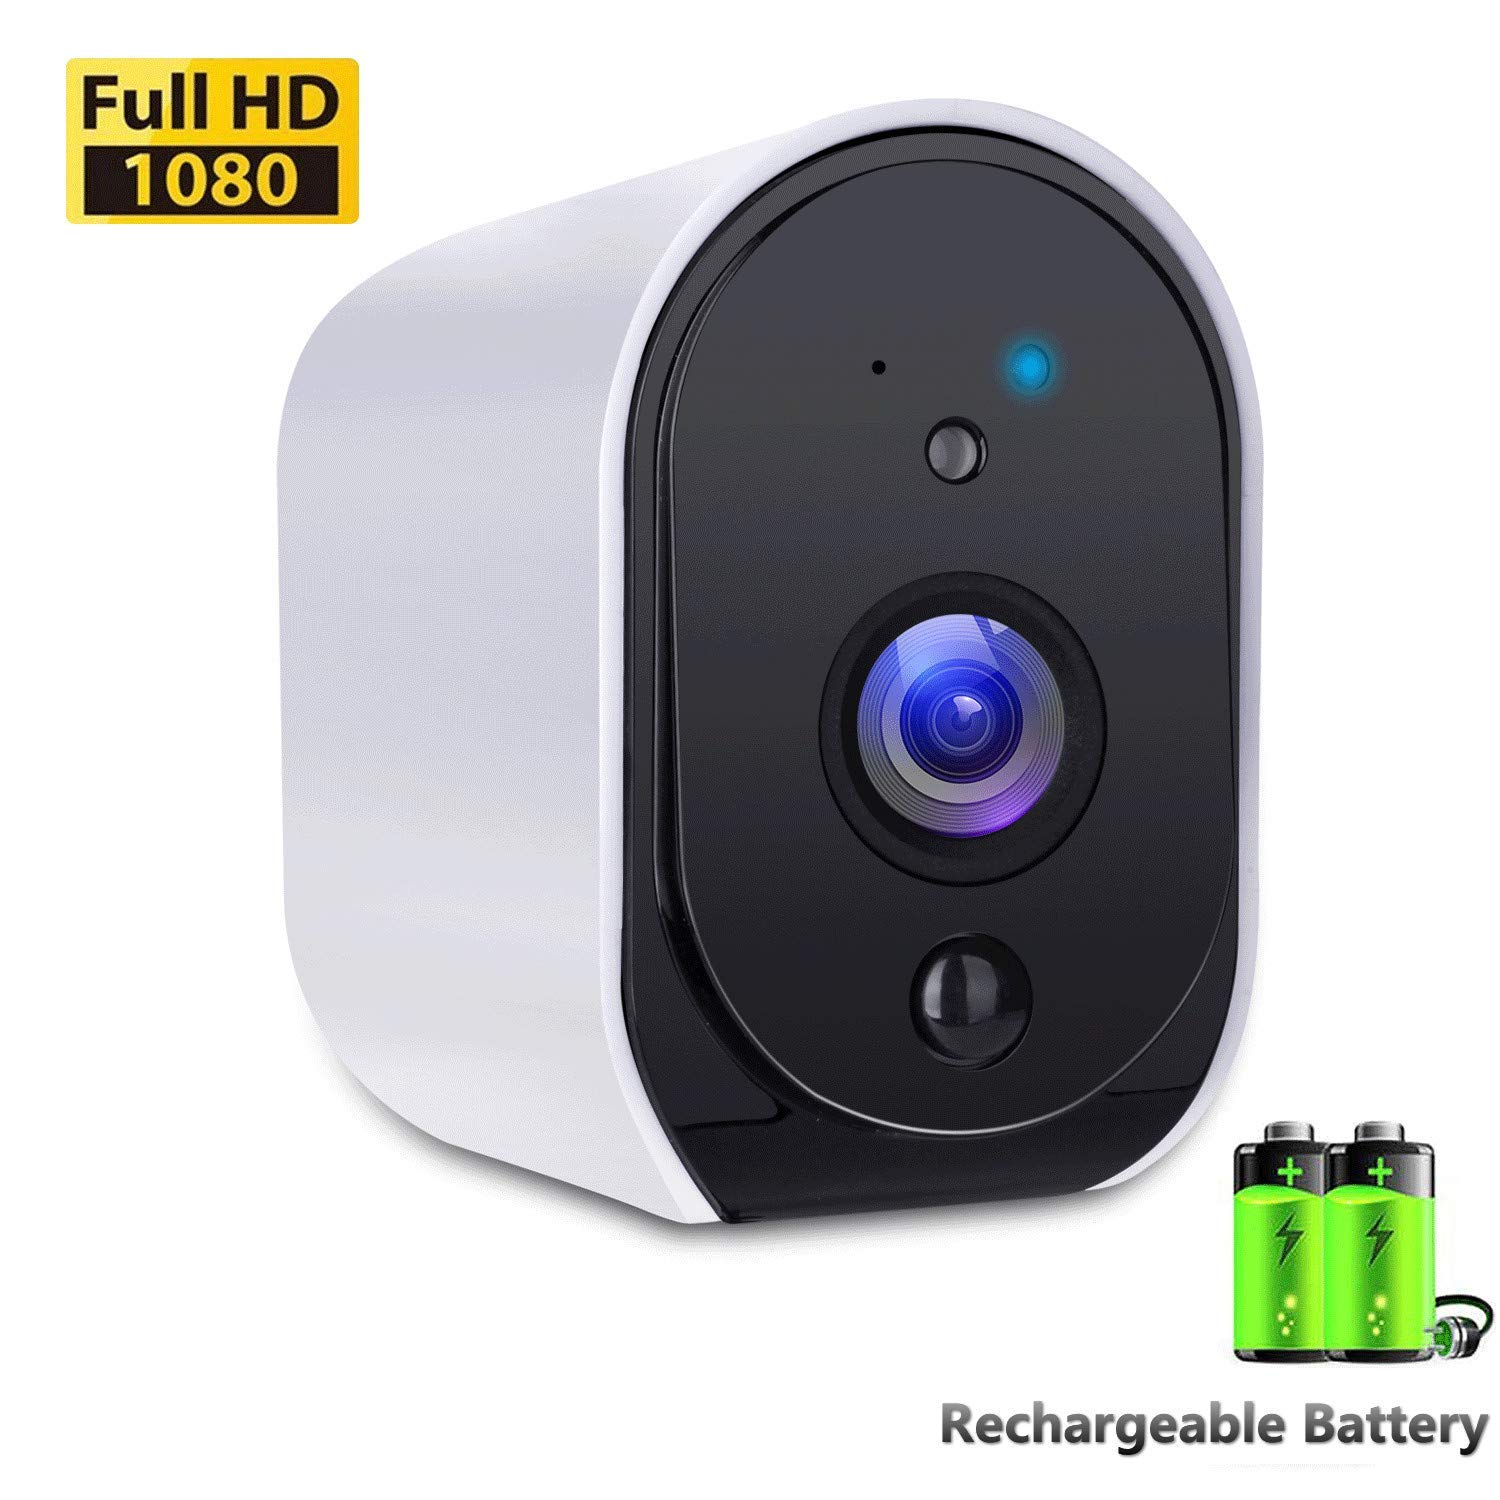 Battery Powered Camera BIZGOOD WiFi IP Camera Home Security System, Night Vision, Indoor/Outdoor Eaves, Compatible with Alexa, 2-Way Audio Talk, Free 32GB Memory Card by BIZGOOD